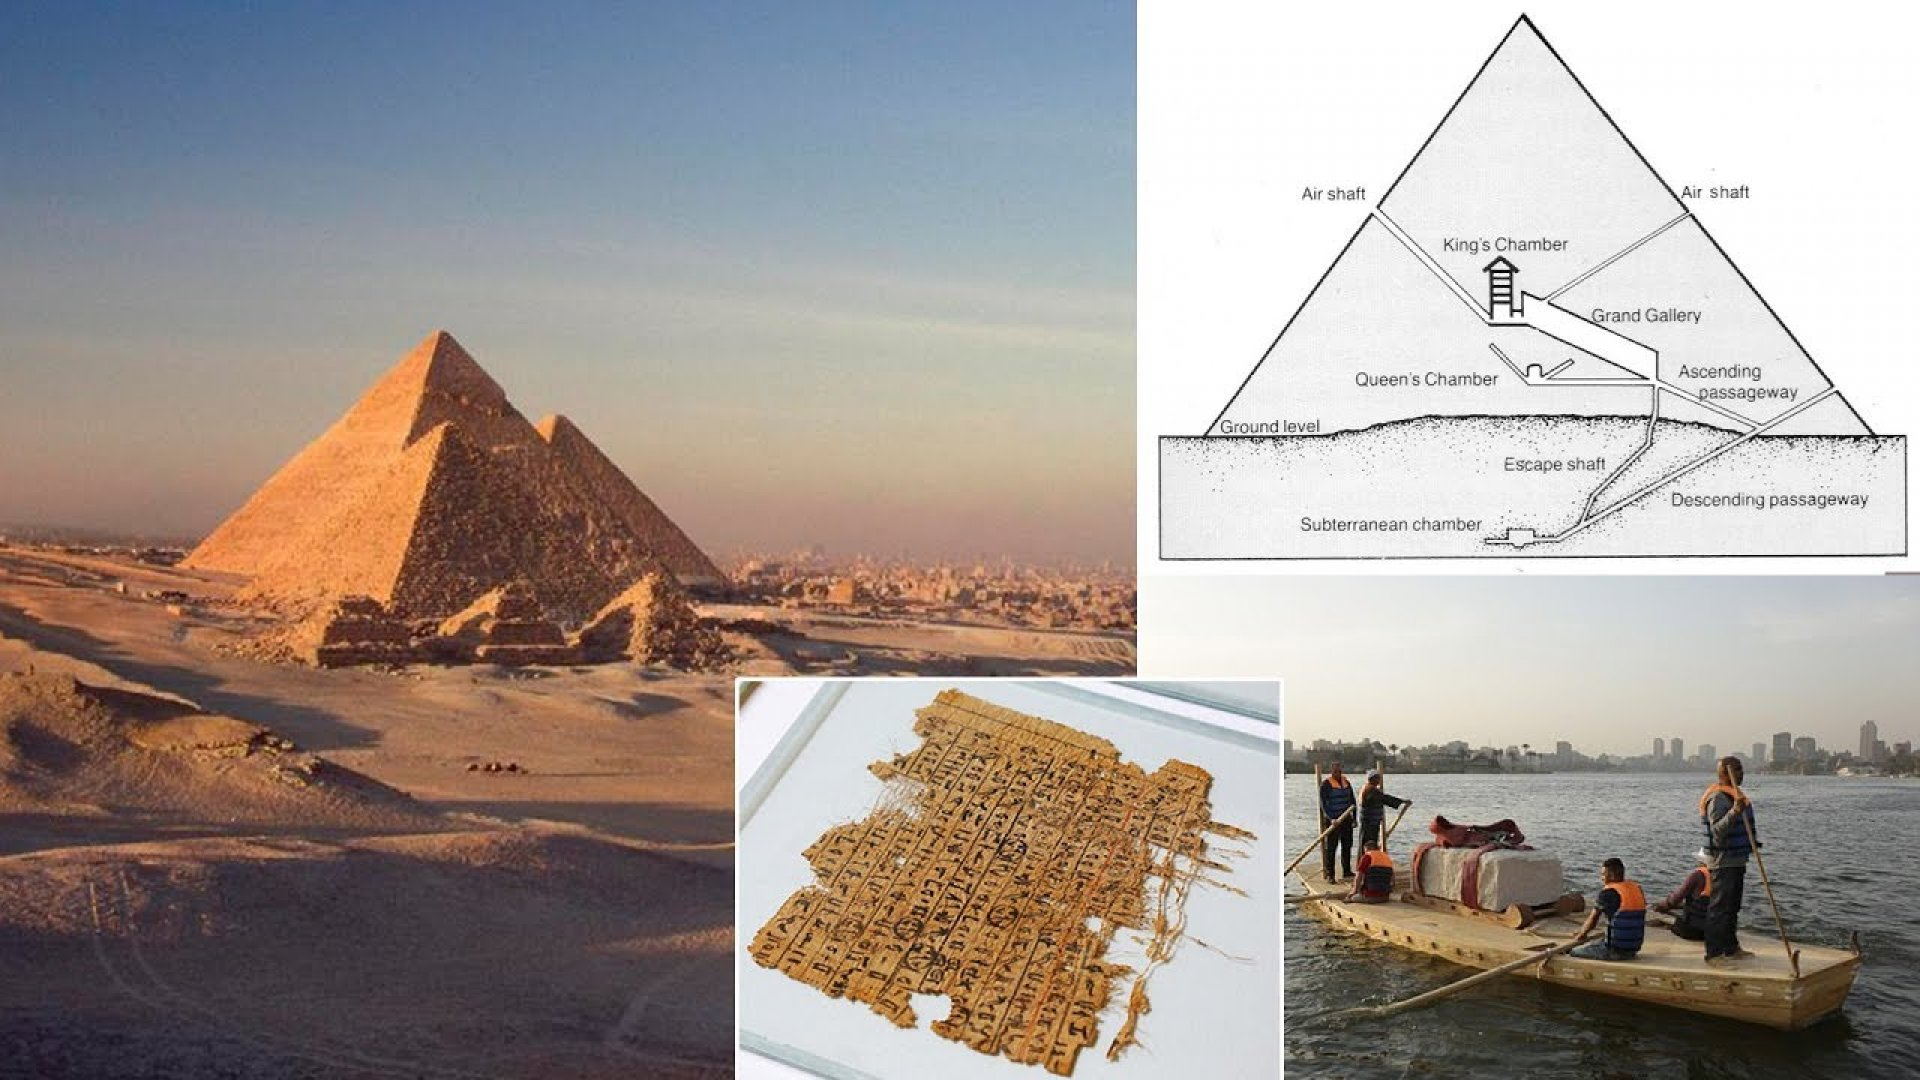 an essay on the mysteries of the pyramids Pyramid essay structure a short introdction to the pyramids of egypt - tour egypt though we have a comprehensive site on the pyramids of egypt, this is a summary overview for those who would like to digest just a little less information.